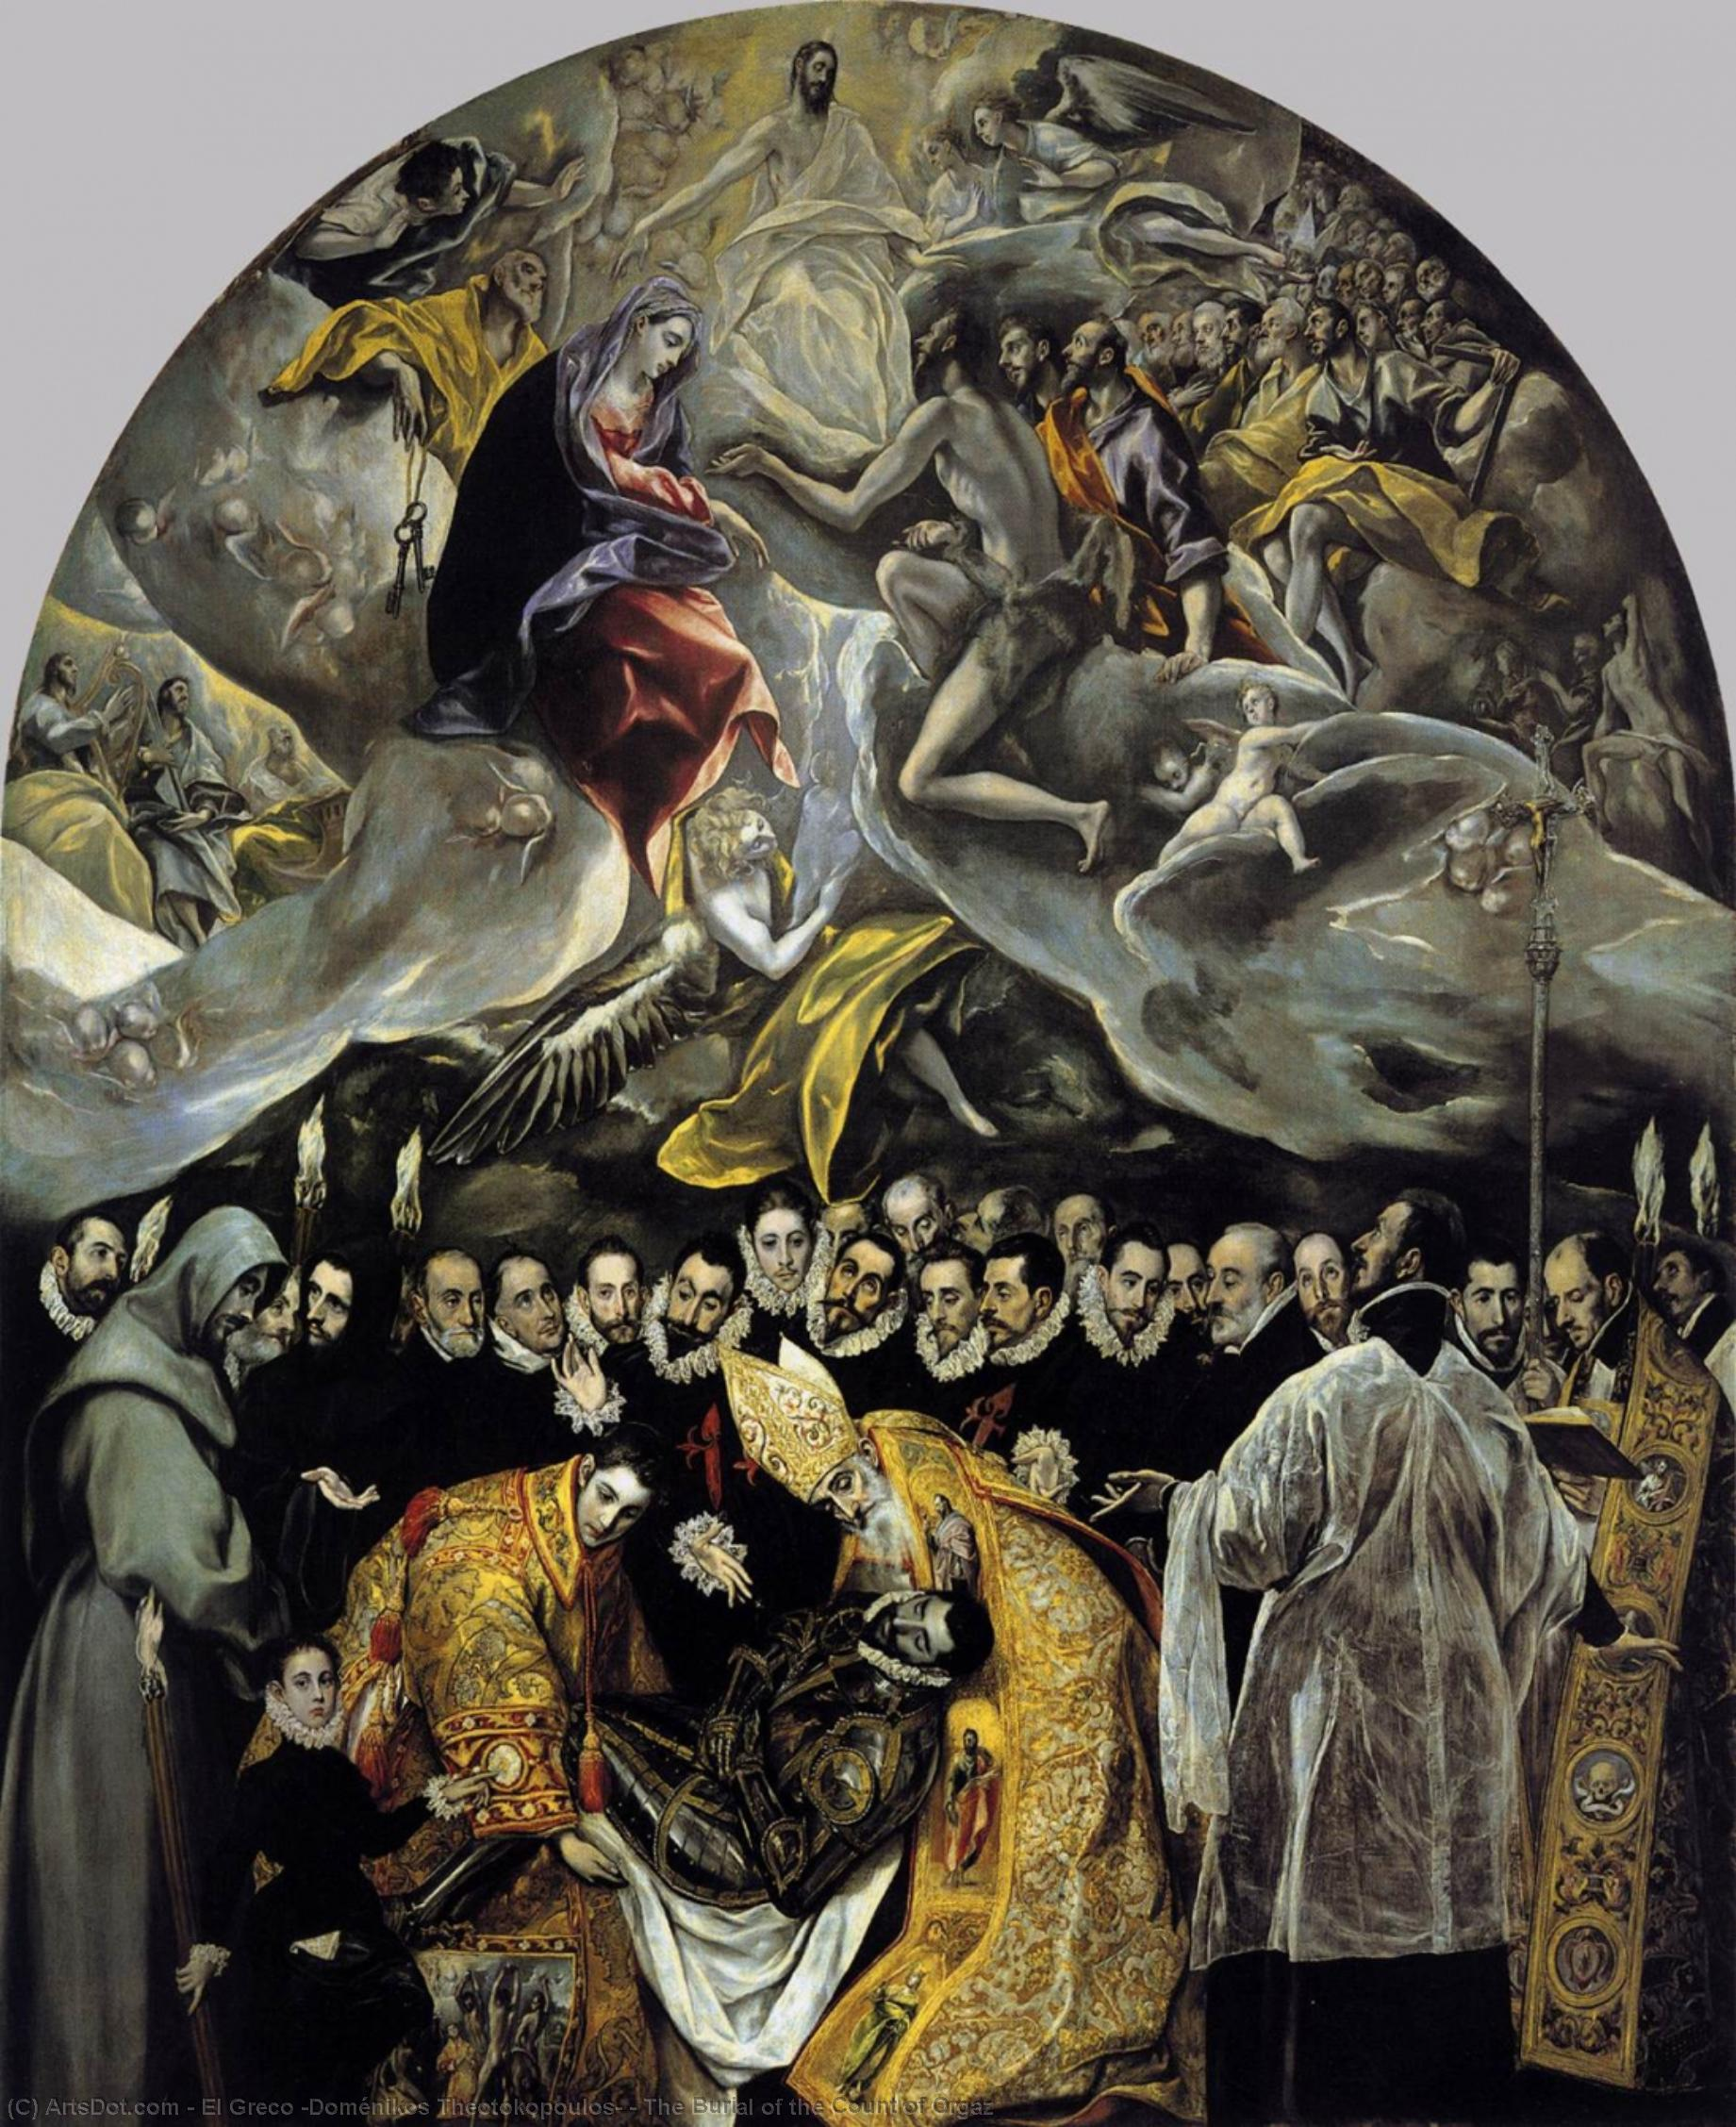 Wikioo.org - The Encyclopedia of Fine Arts - Painting, Artwork by El Greco (Doménikos Theotokopoulos) - The Burial of the Count of Orgaz